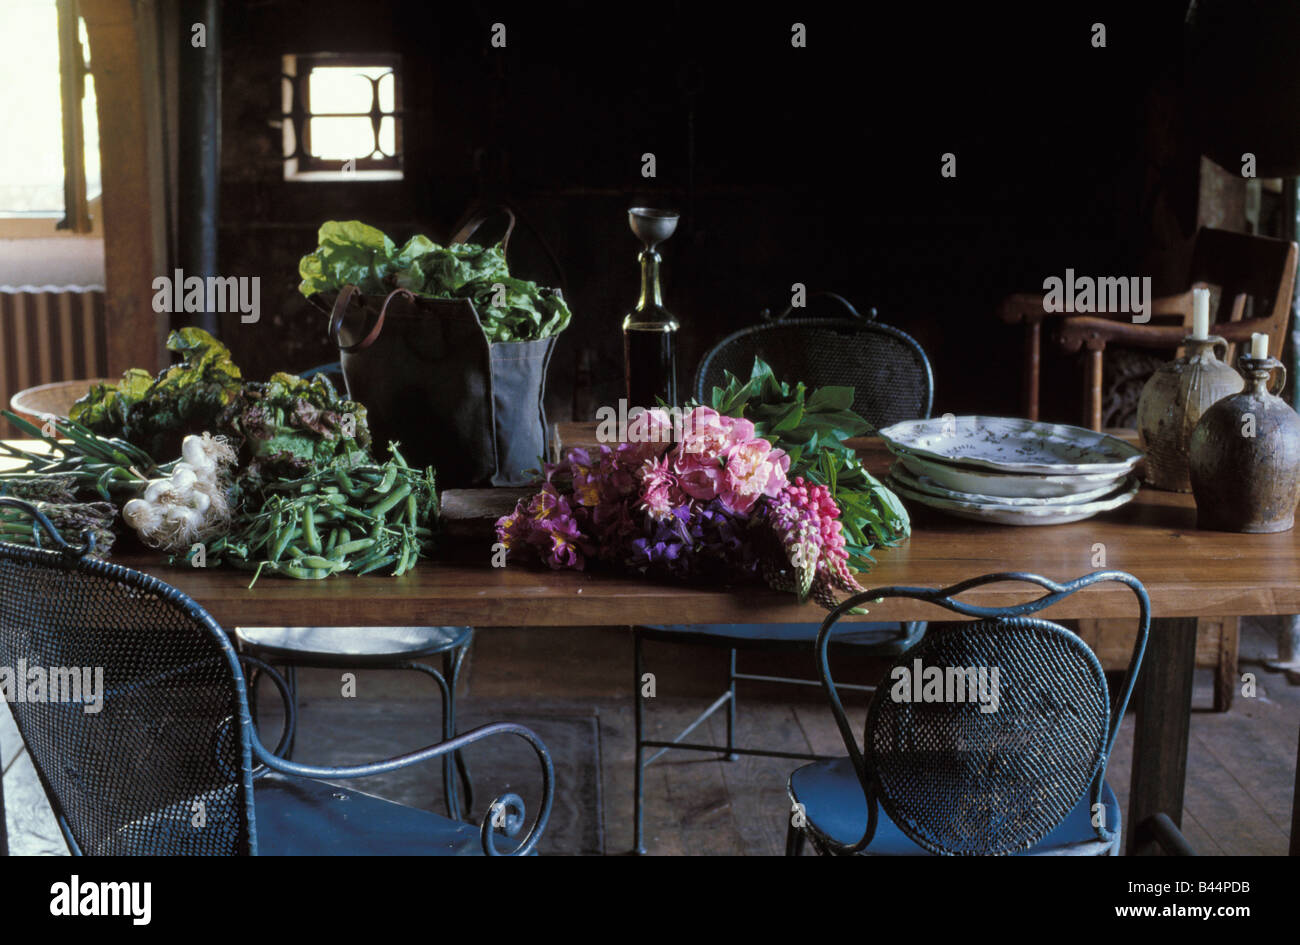 Vegetables in the kitchen - Stock Image